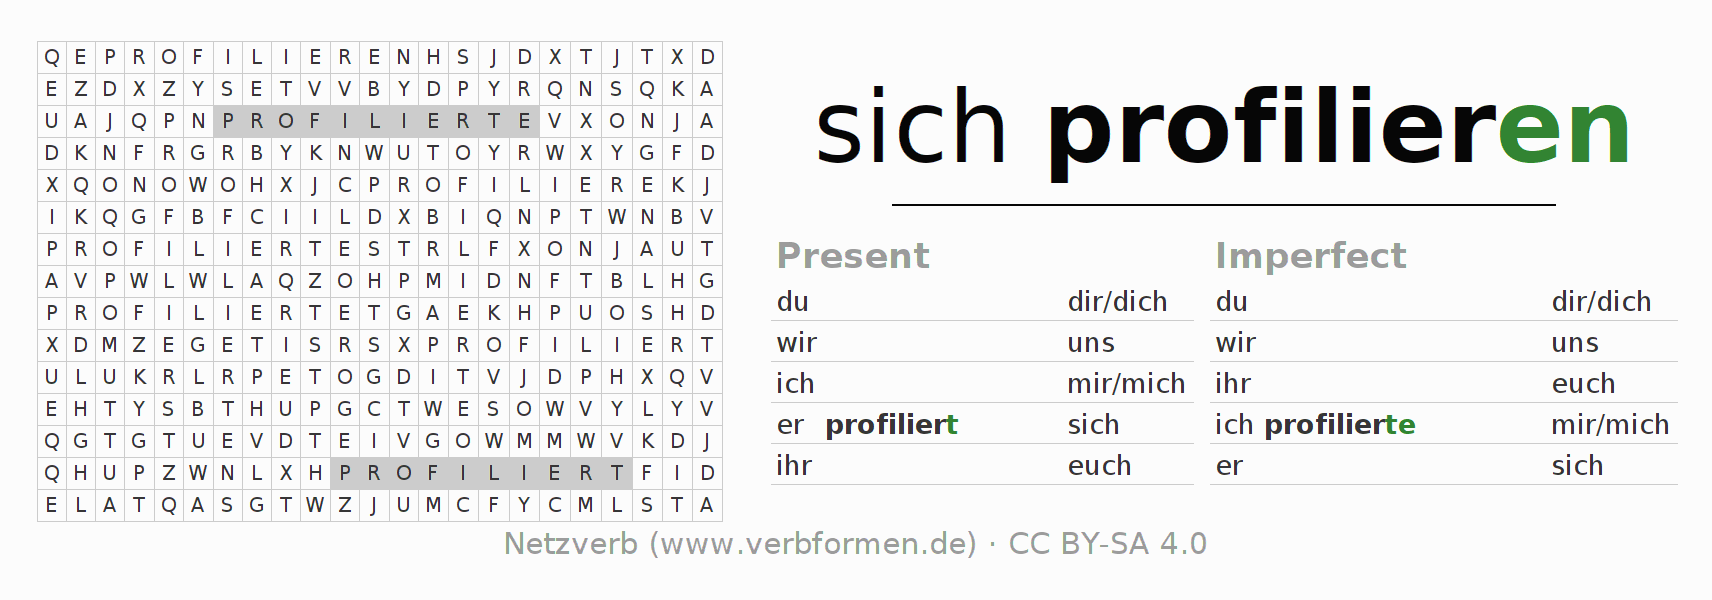 Word search puzzle for the conjugation of the verb sich profilieren